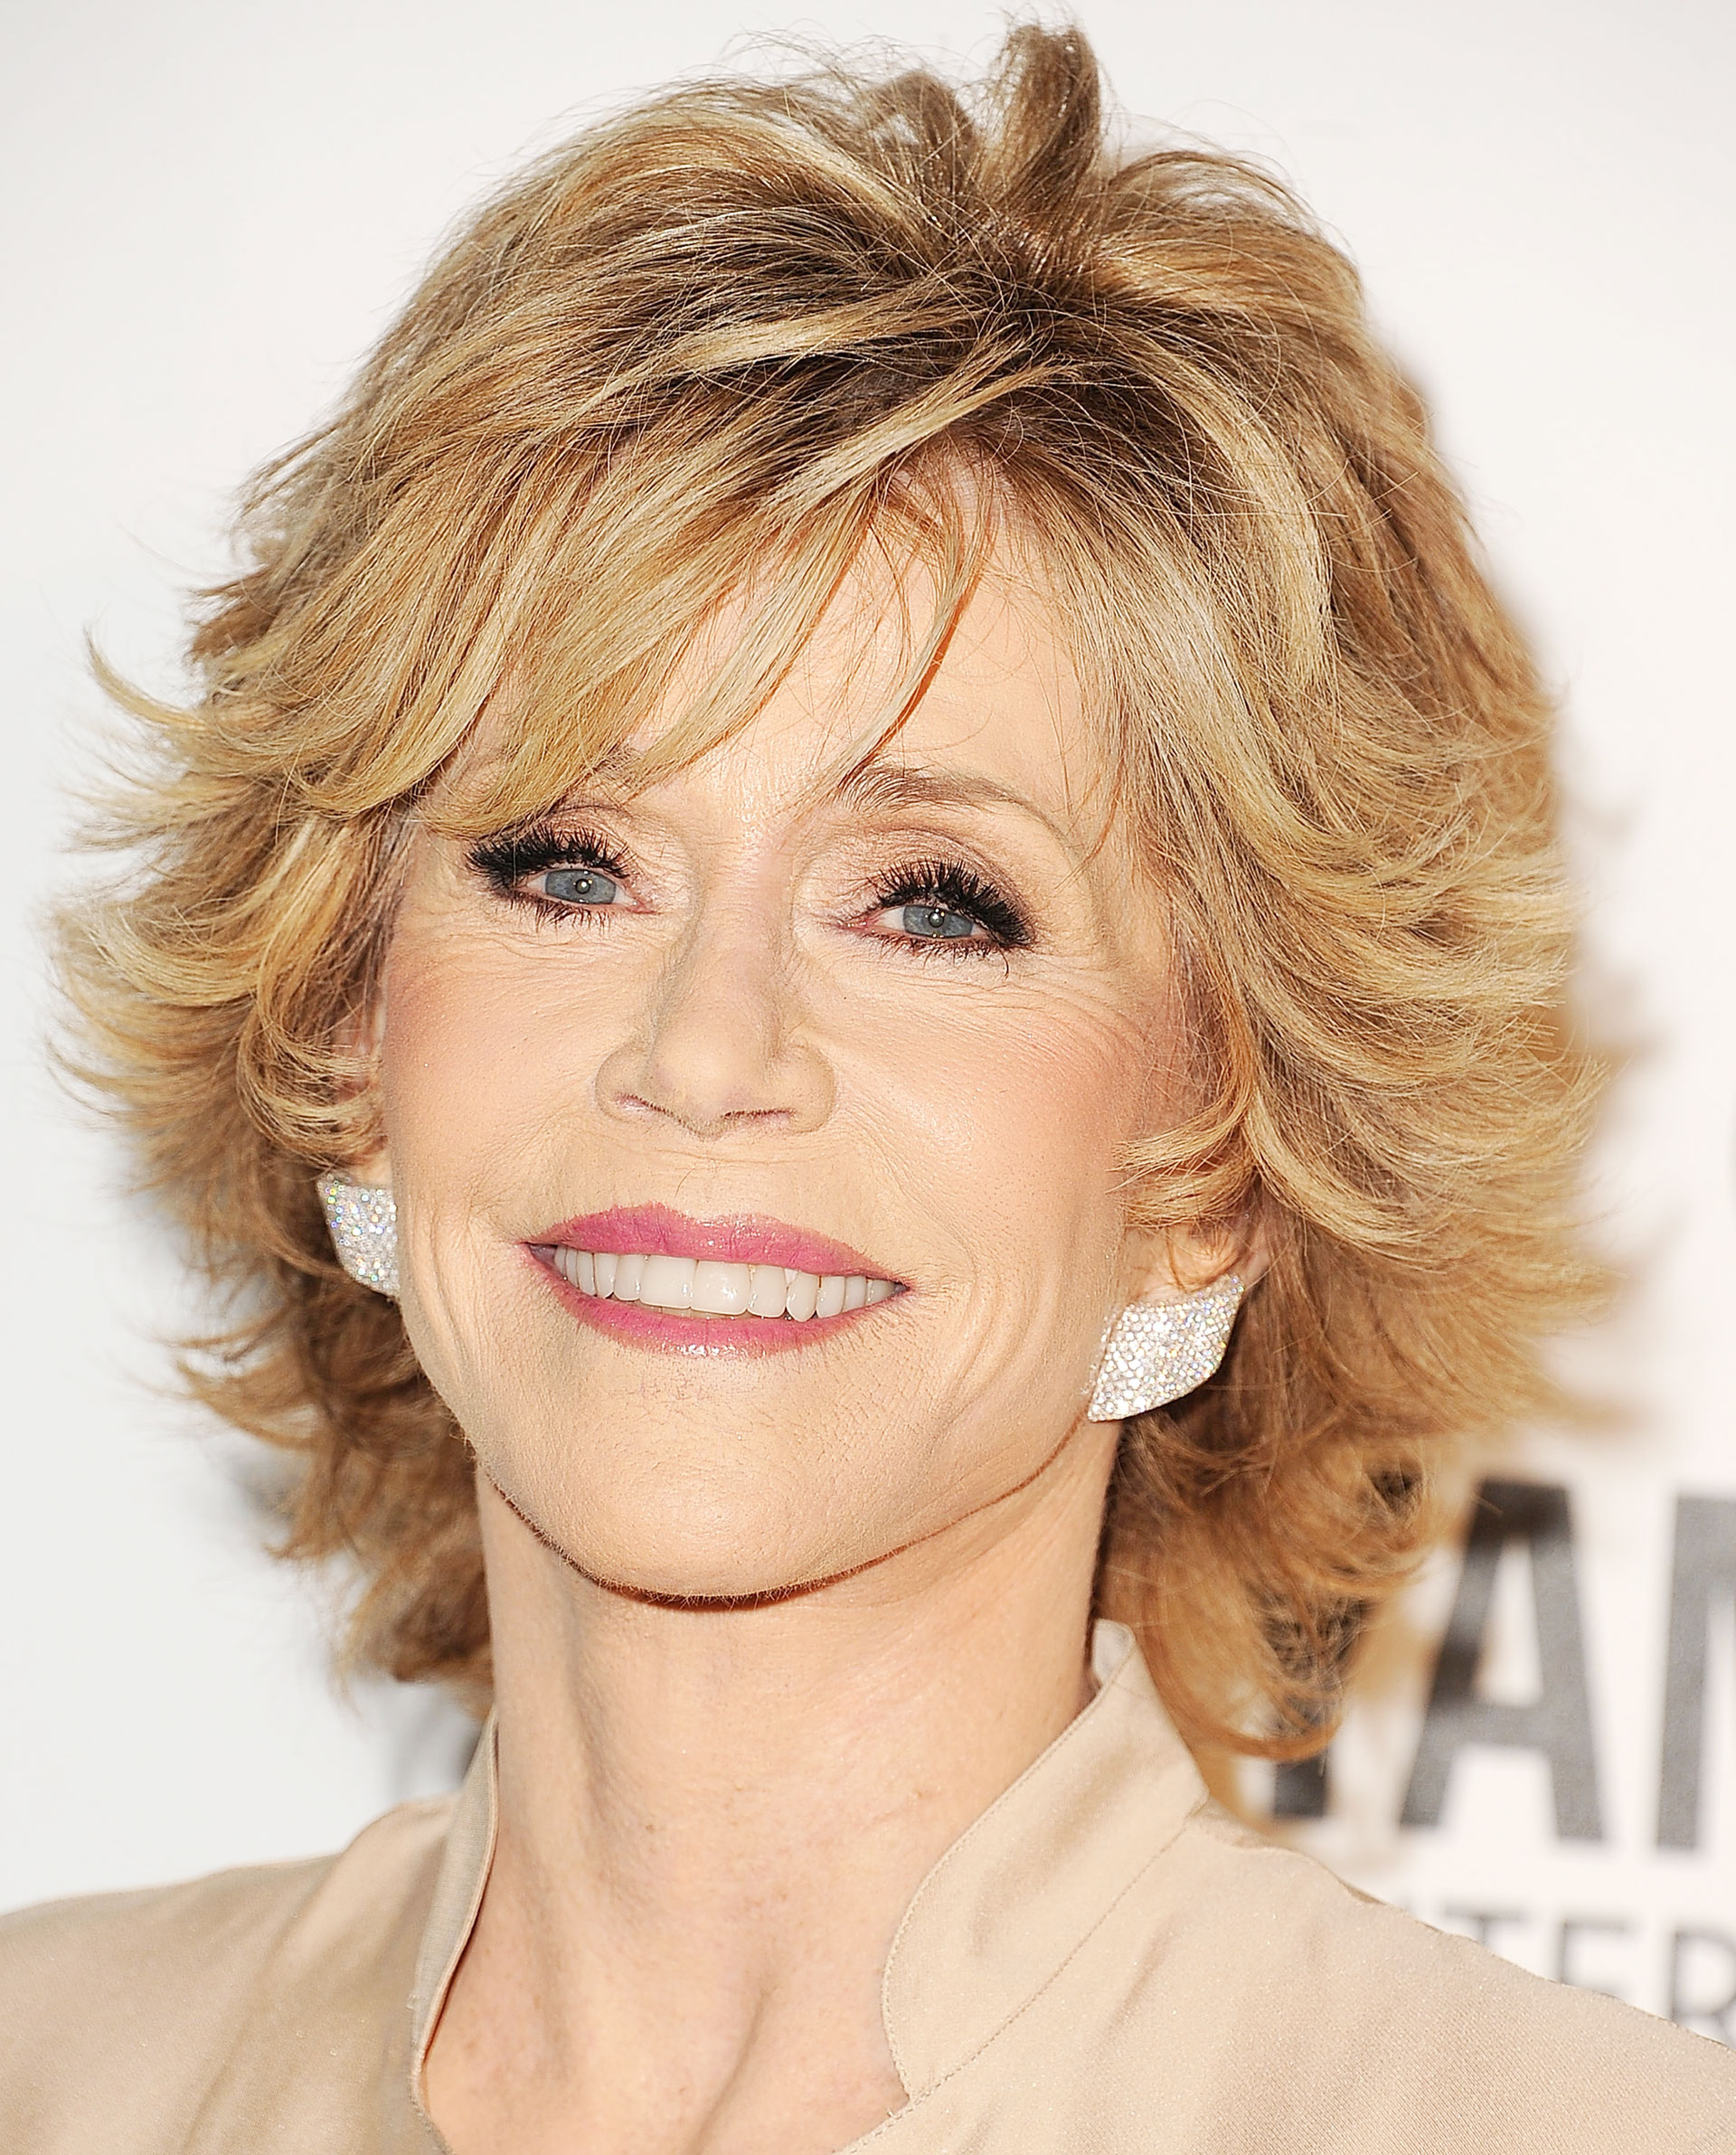 Admirable Best Hairstyles For Women Over 50 Celebrity Haircuts Over 50 Short Hairstyles Gunalazisus